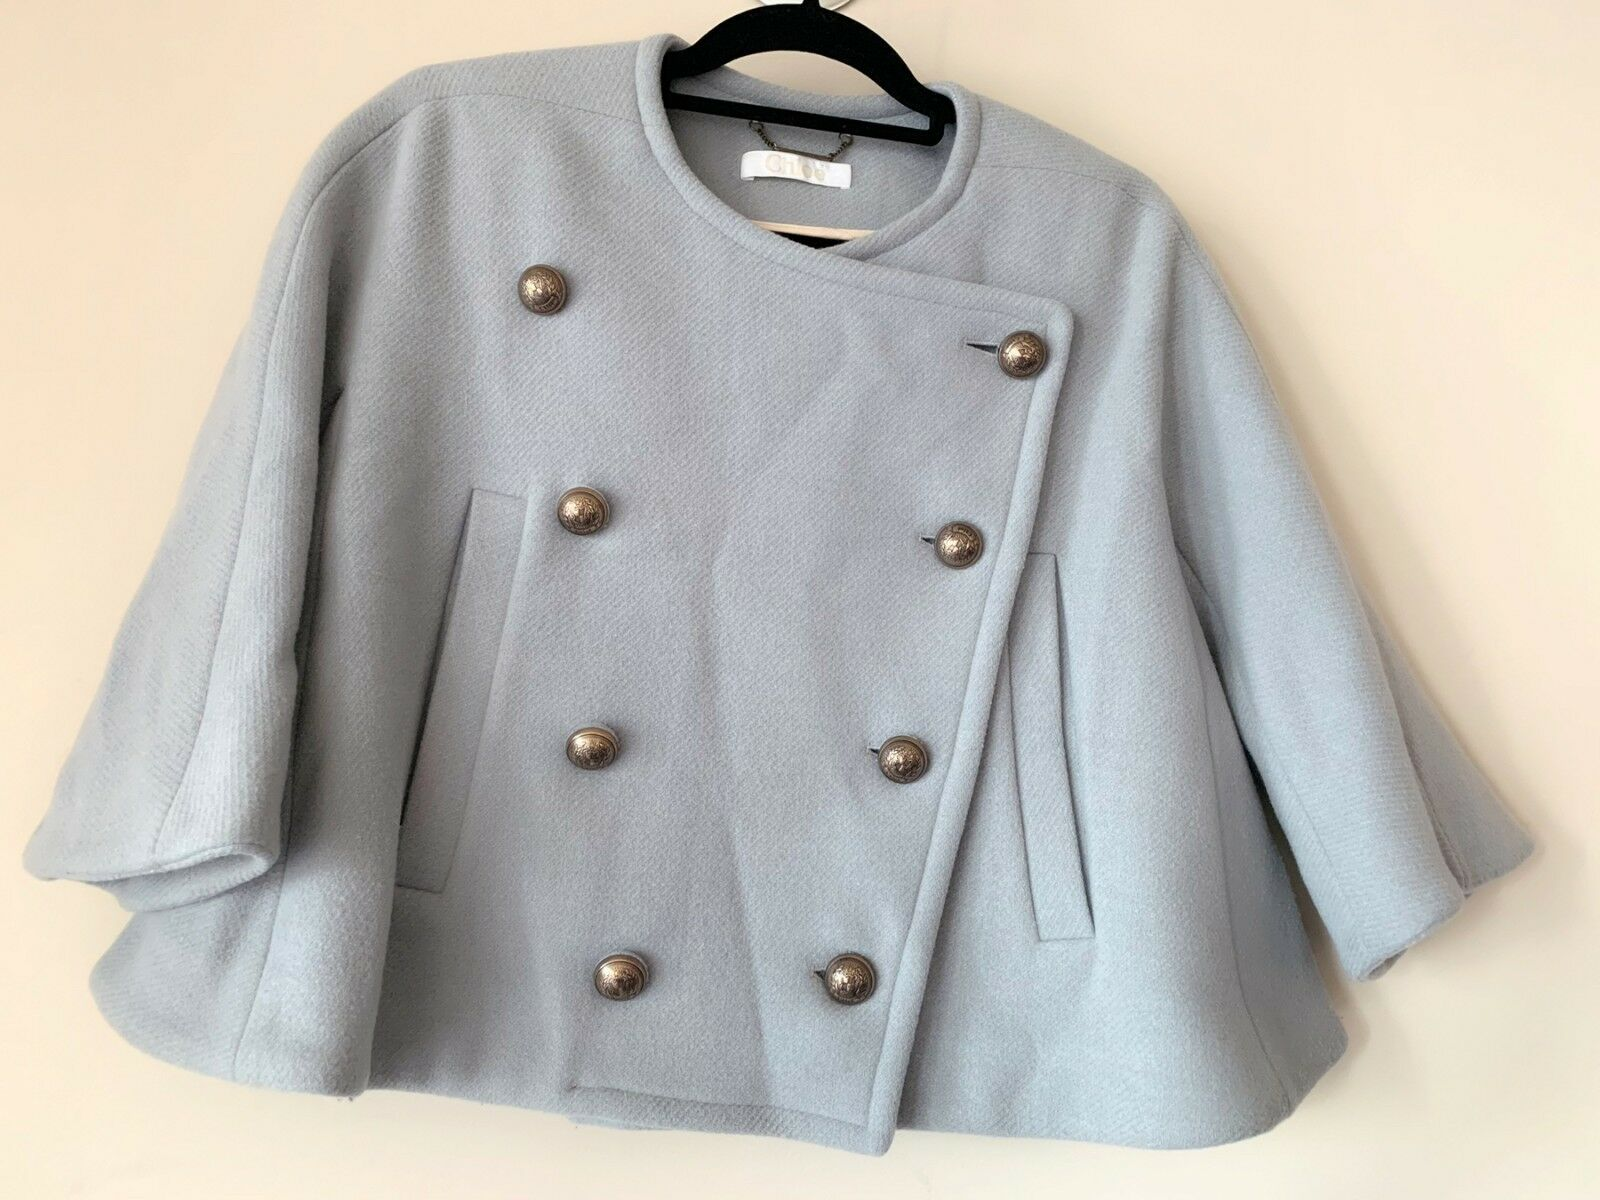 AUTH Chloe Double Breasted Wool Coat SIZE 34